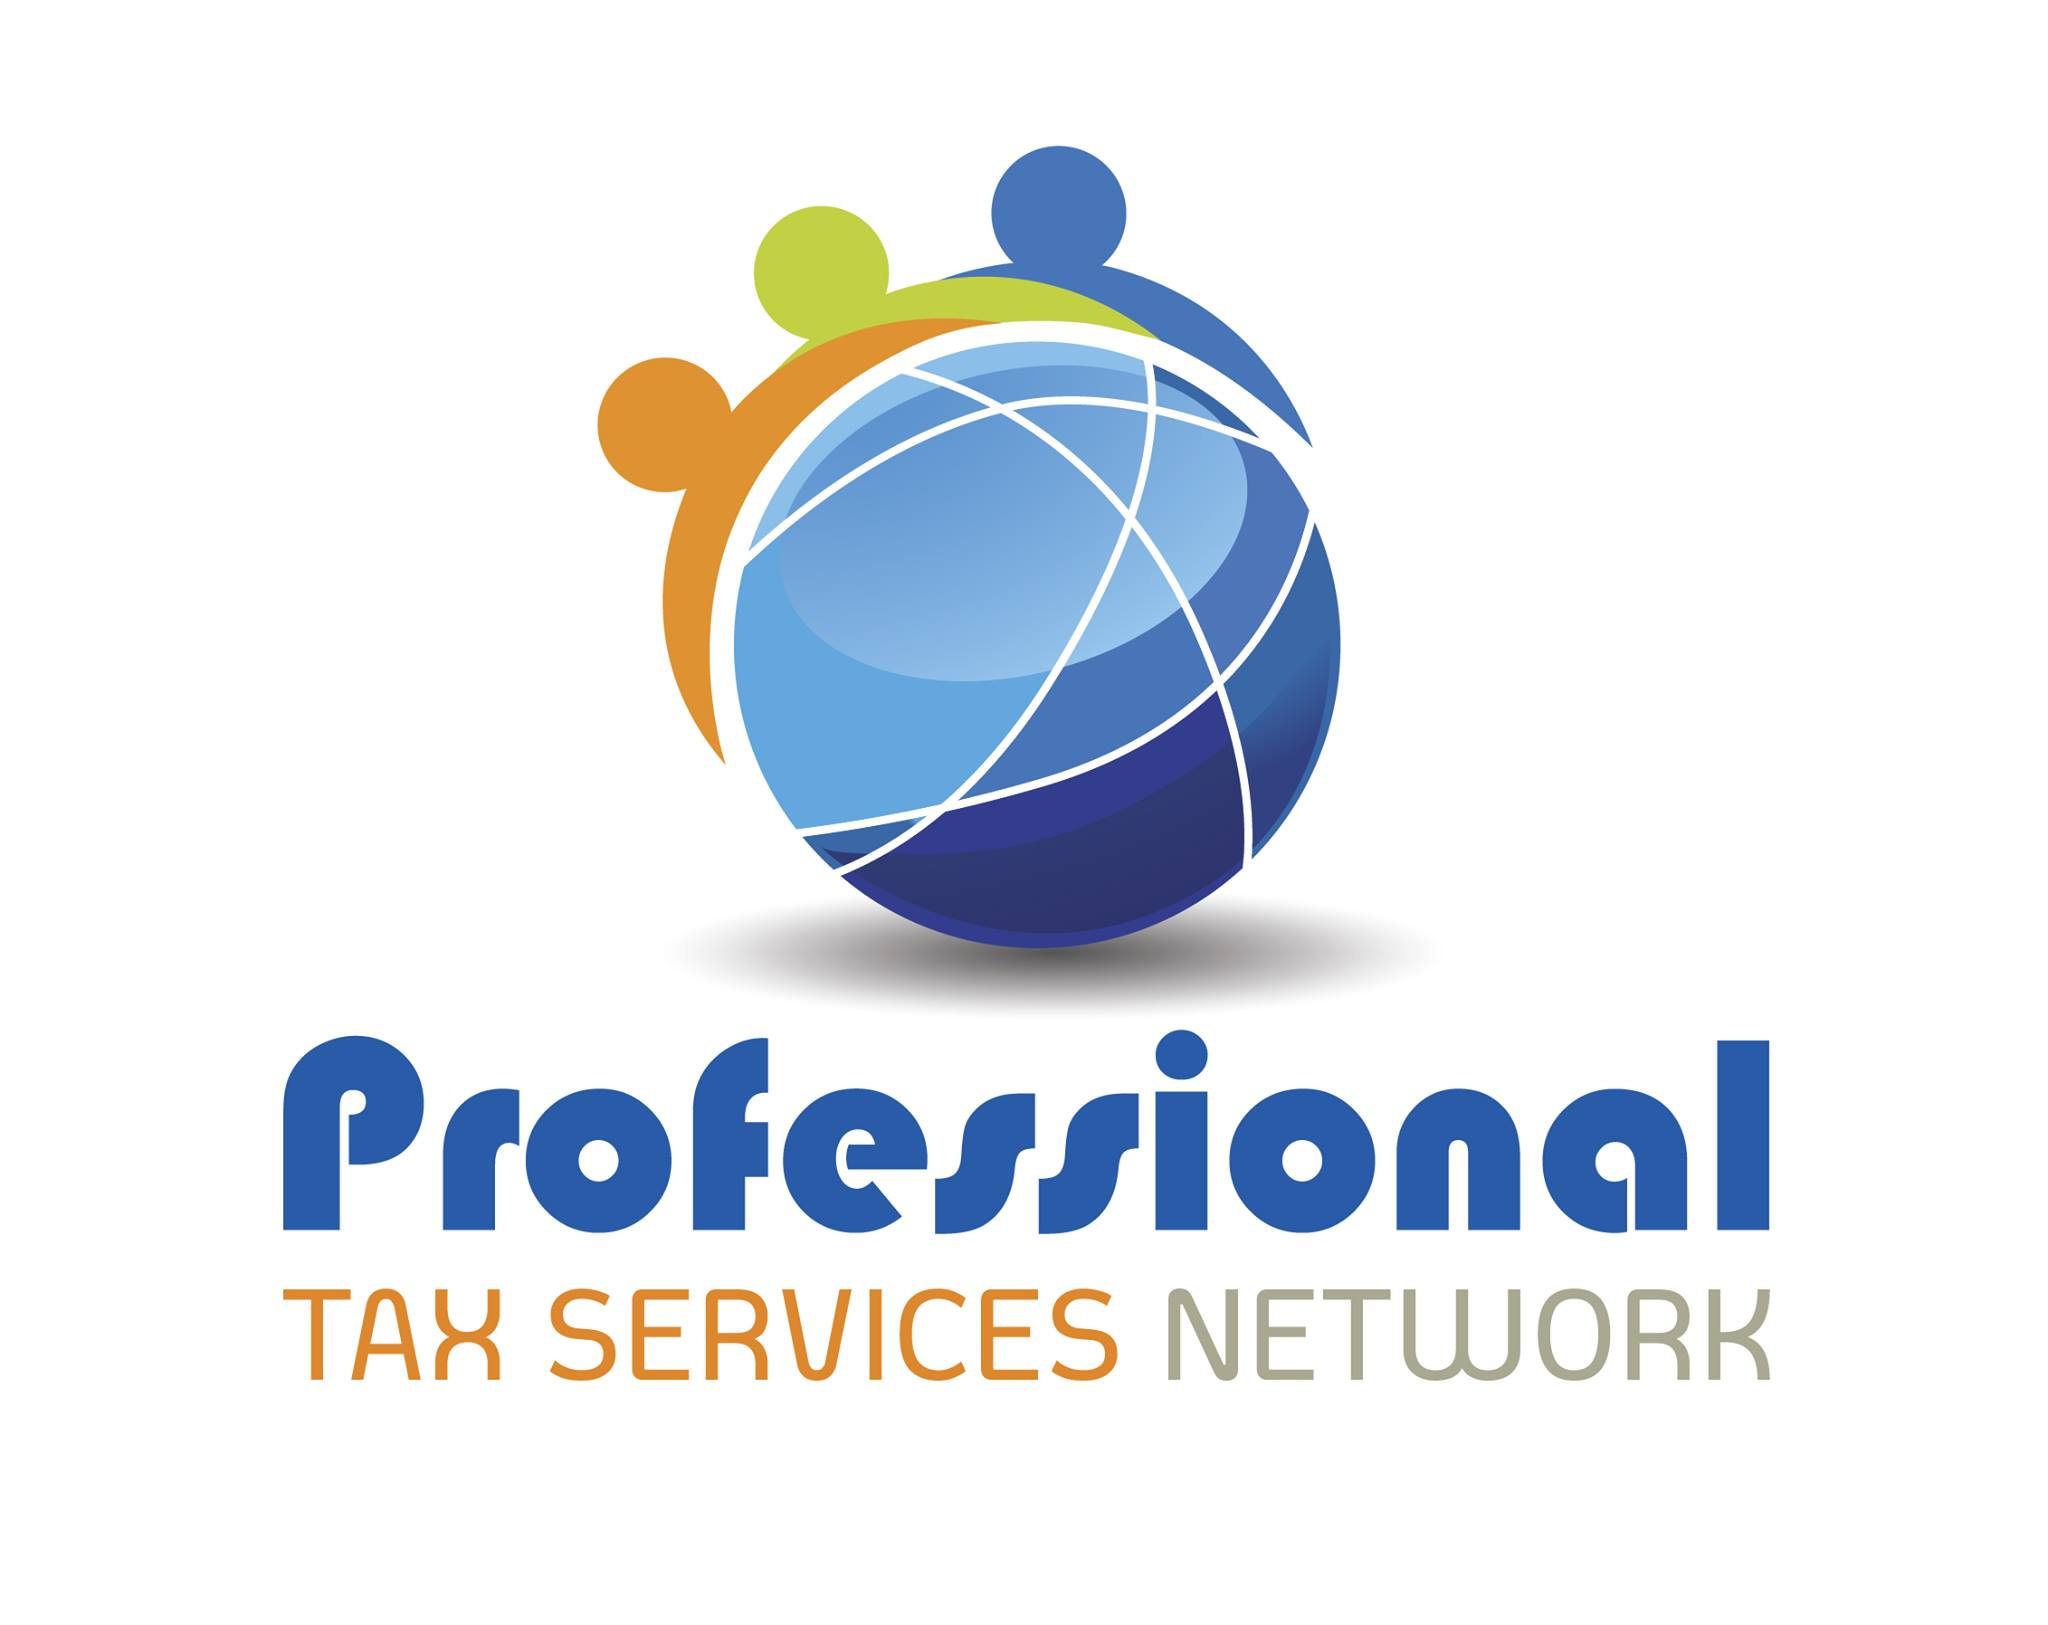 PROFESSIONAL SERVICES TAX NETWORK